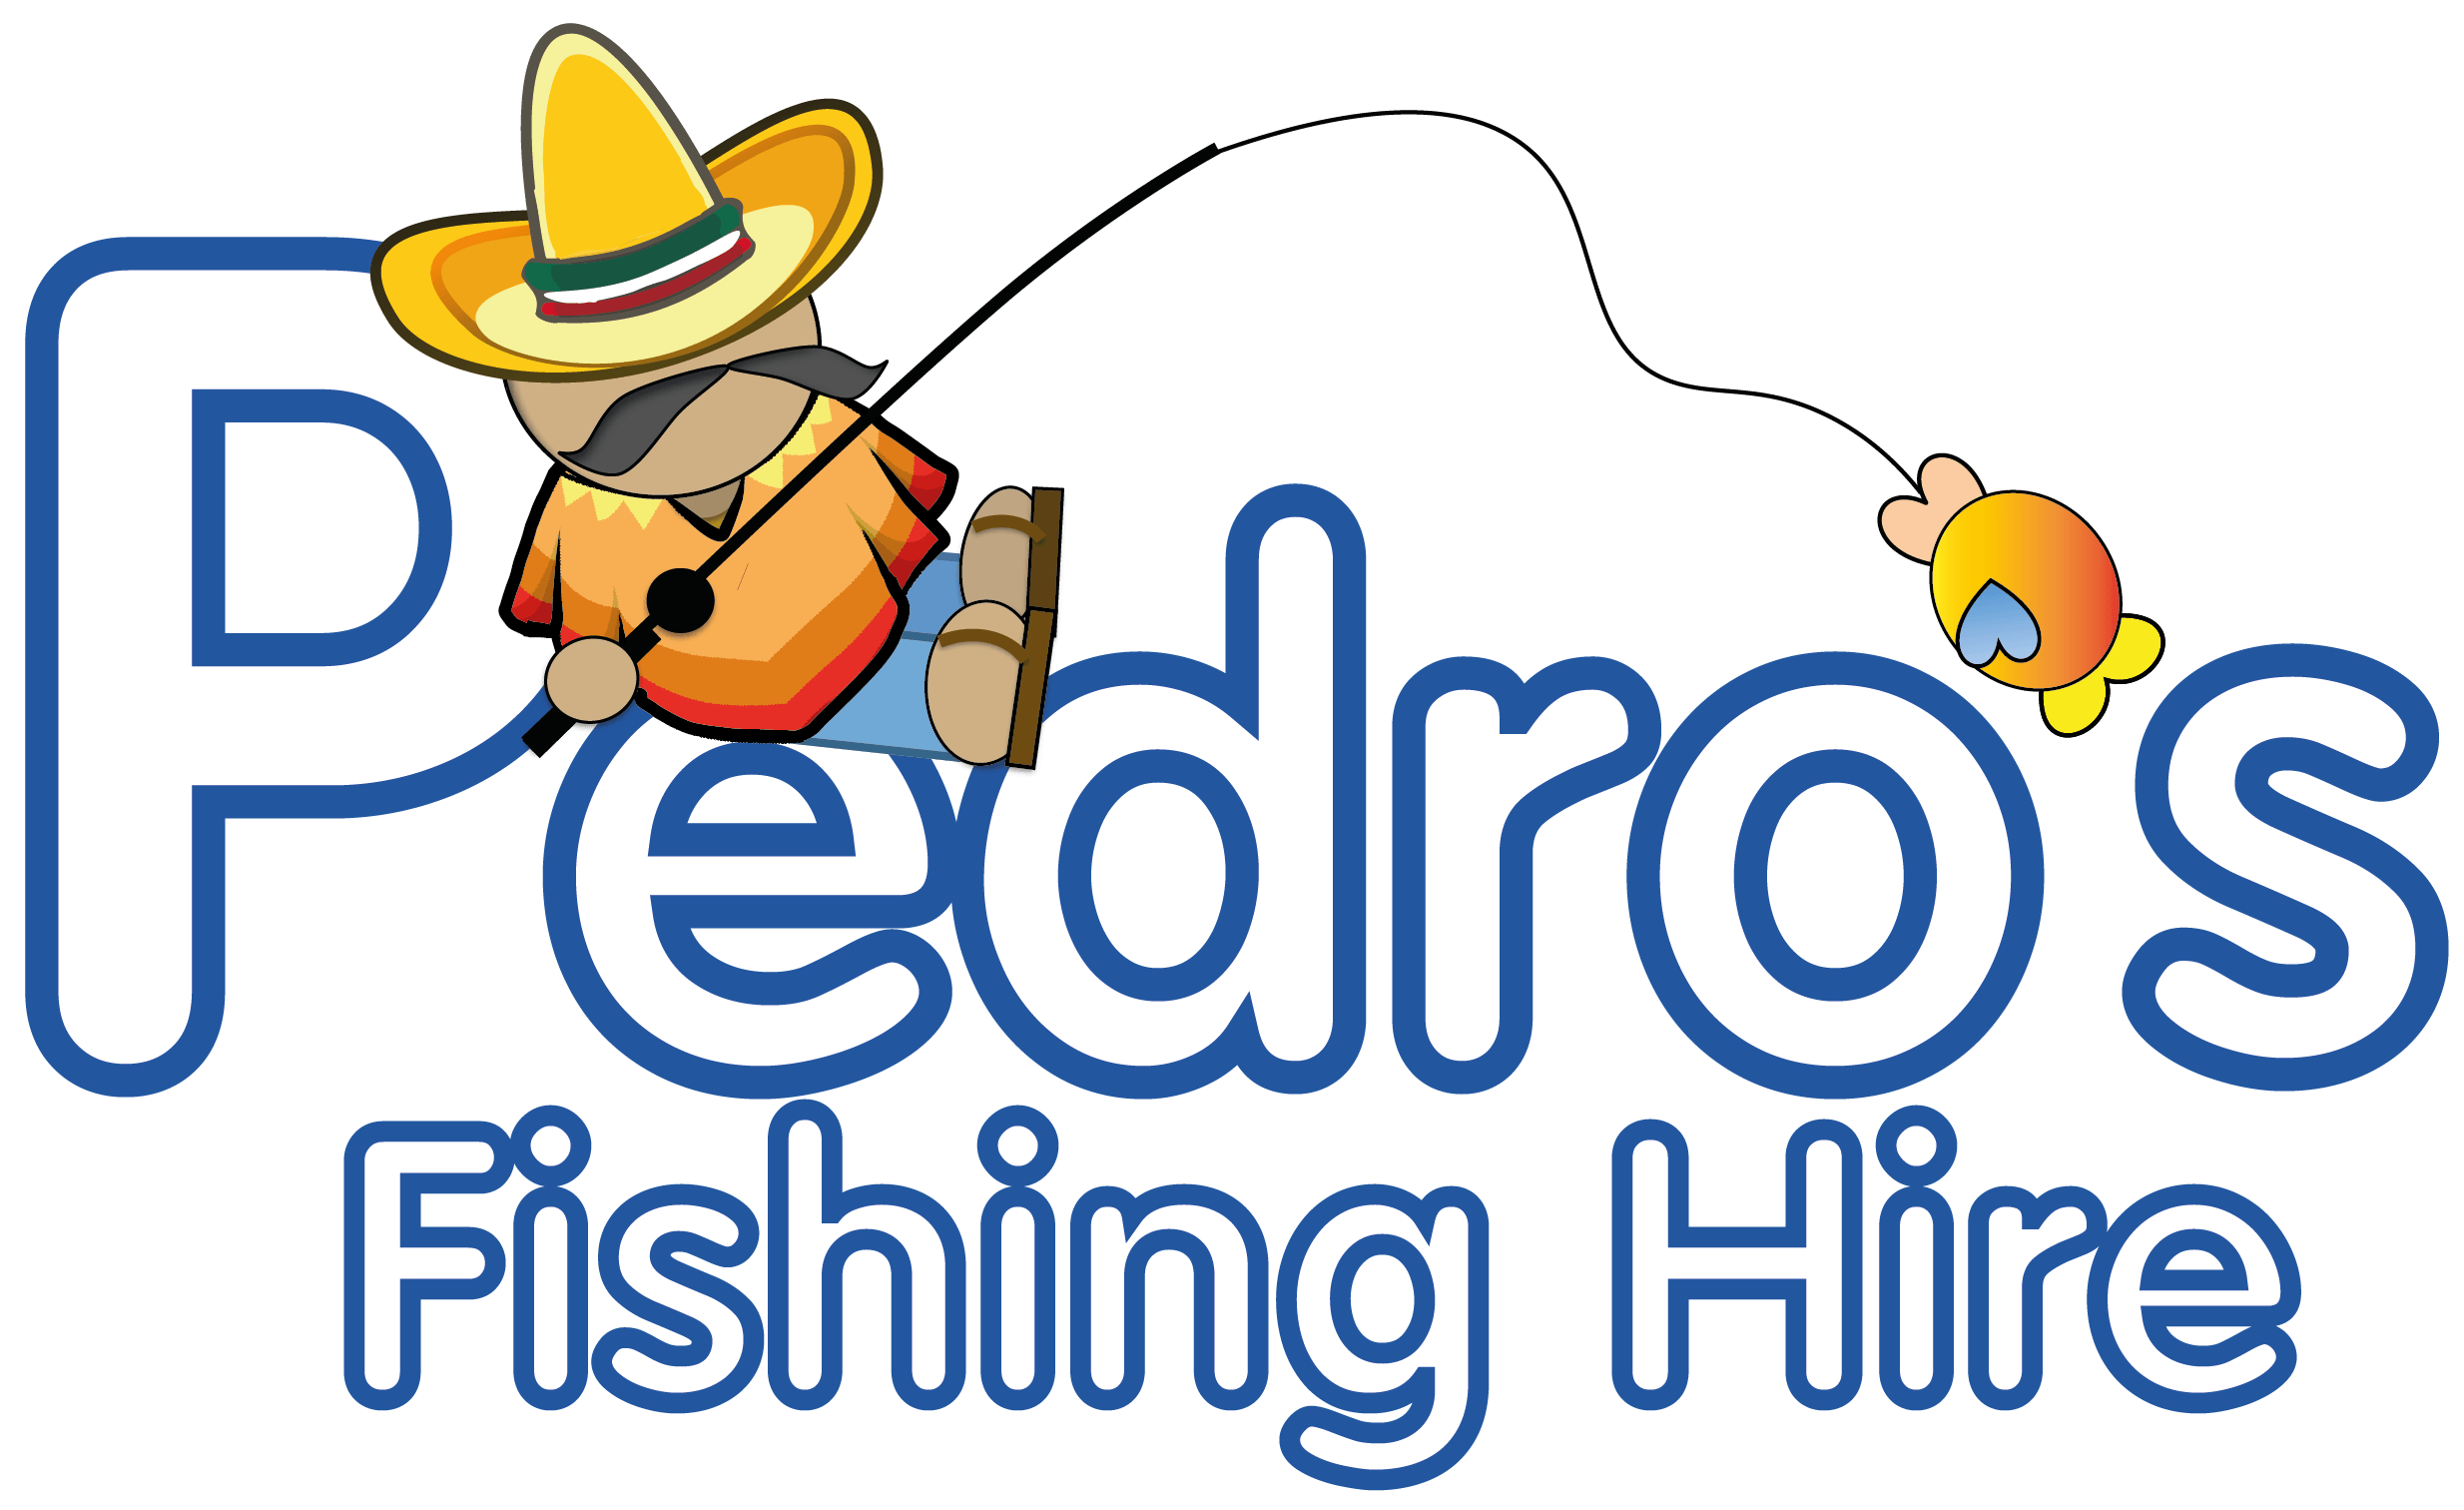 Pedro's Fishing Gear Hire